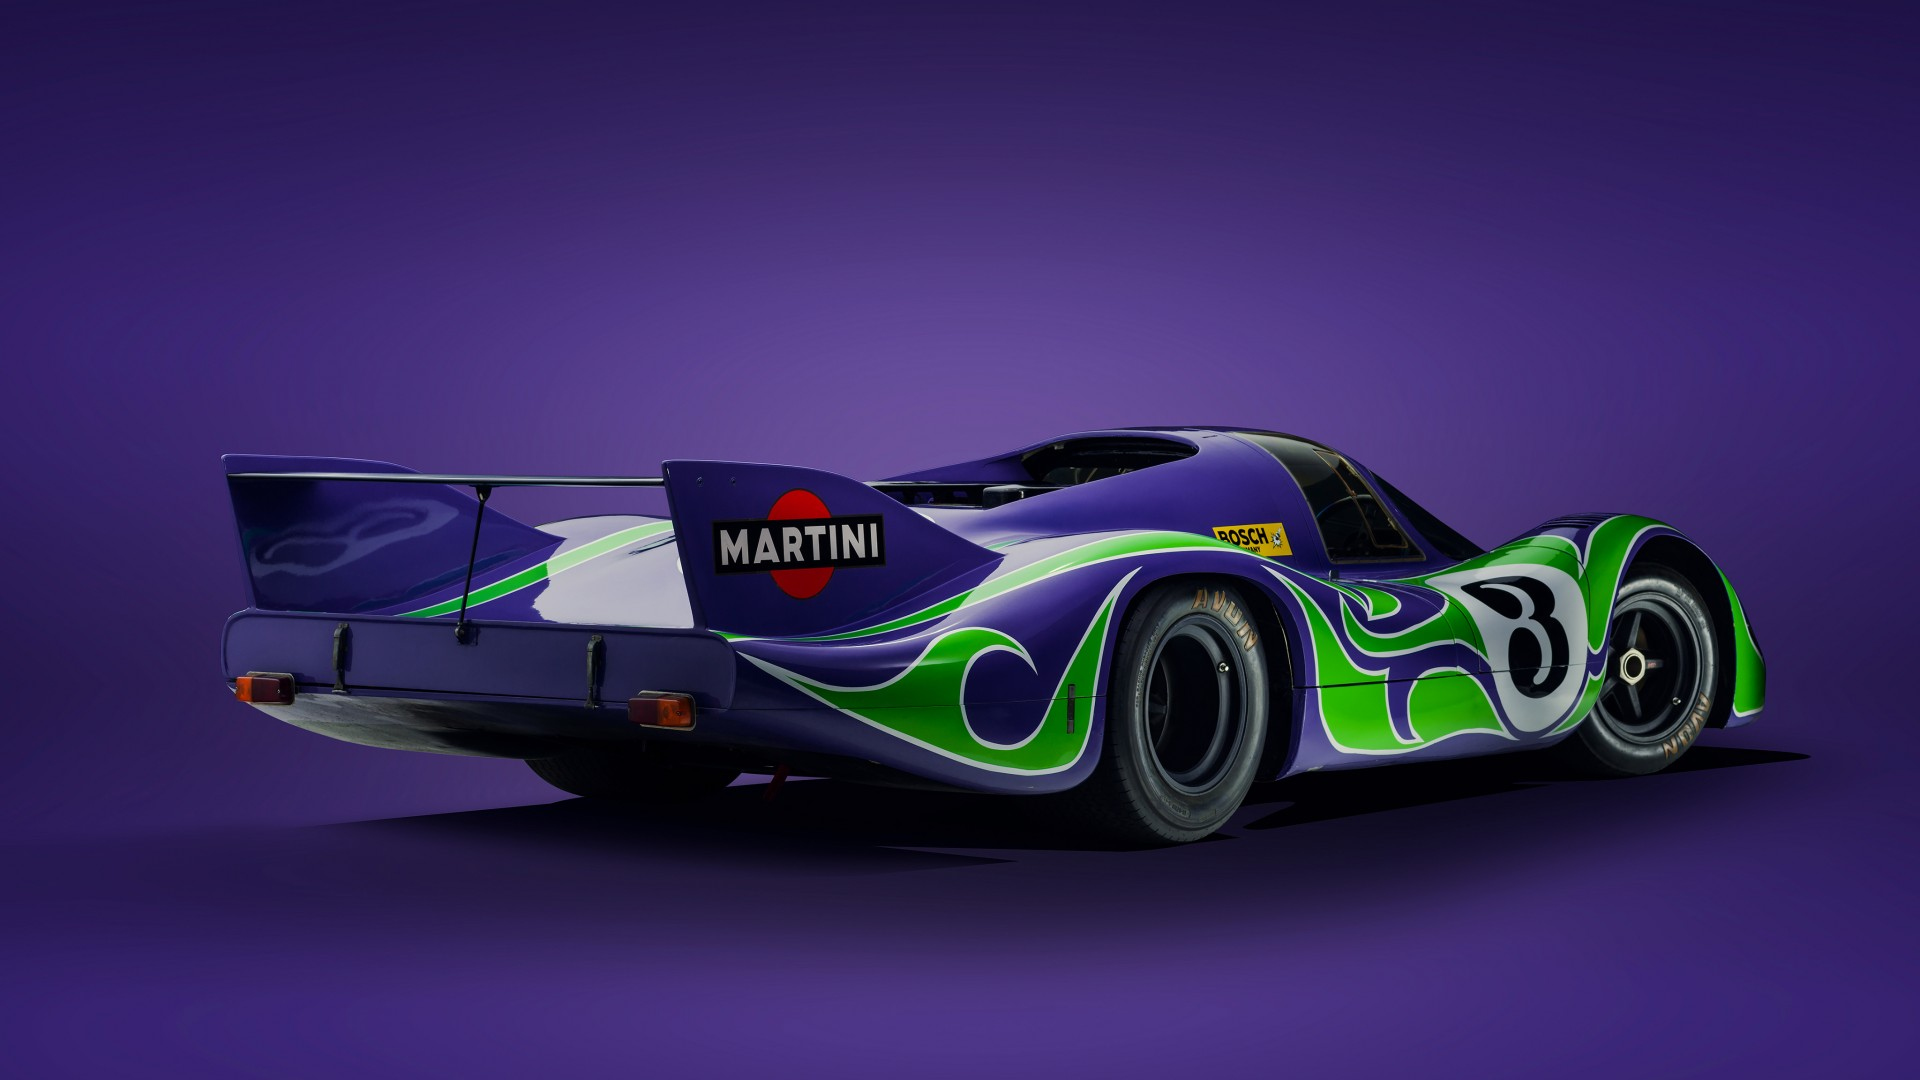 Jaguar Iphone Wallpaper 1970 Porsche 917 Langheck 2 Wallpaper Hd Car Wallpapers